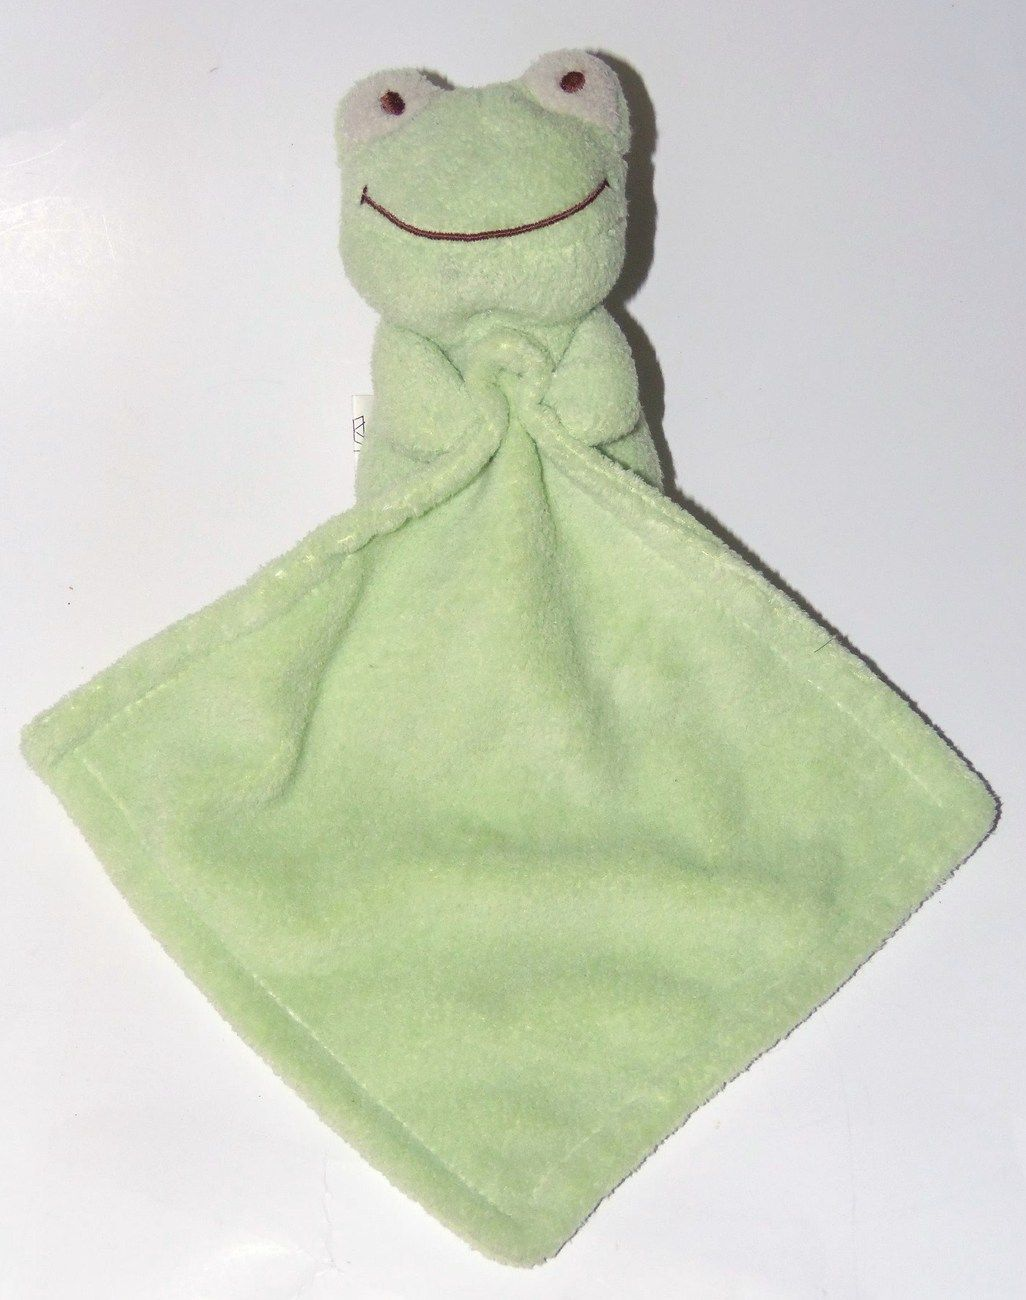 Blankets And Beyond Green Frog Blanket Plush Stuffed Animal Baby Toy